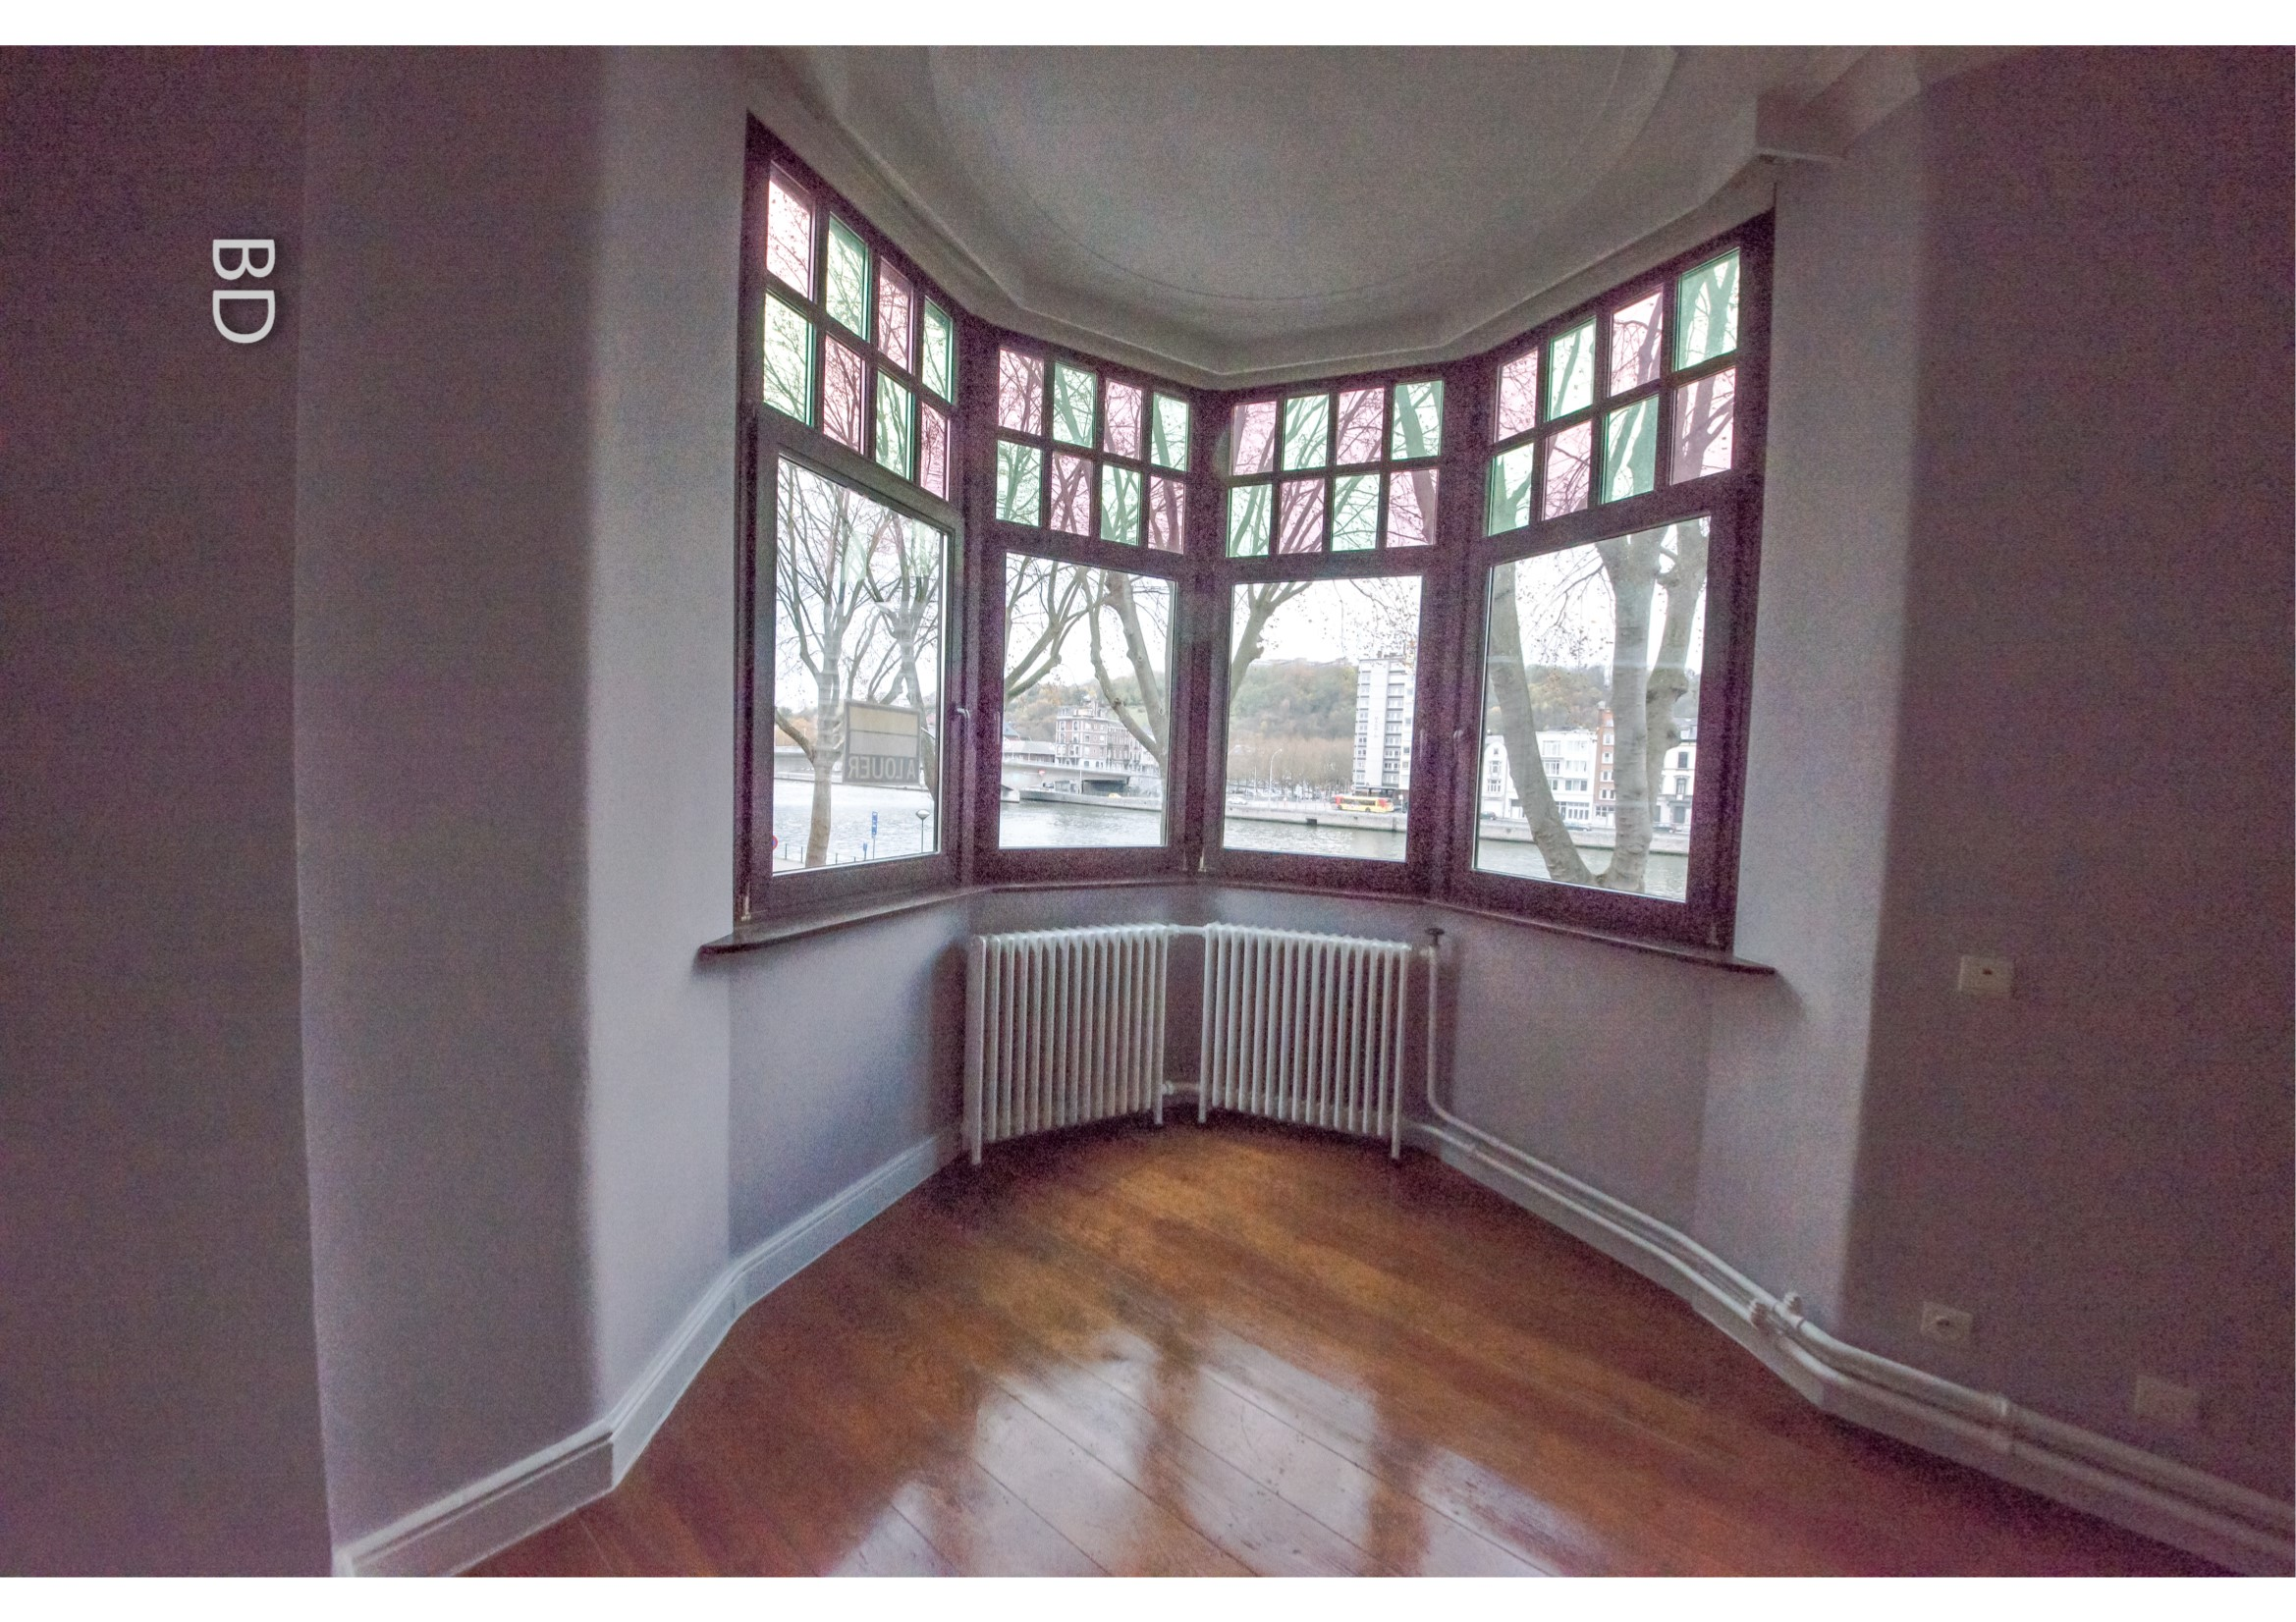 Appartement 2 chambres louer 4020 li ge immo particulier for Deco appartement location